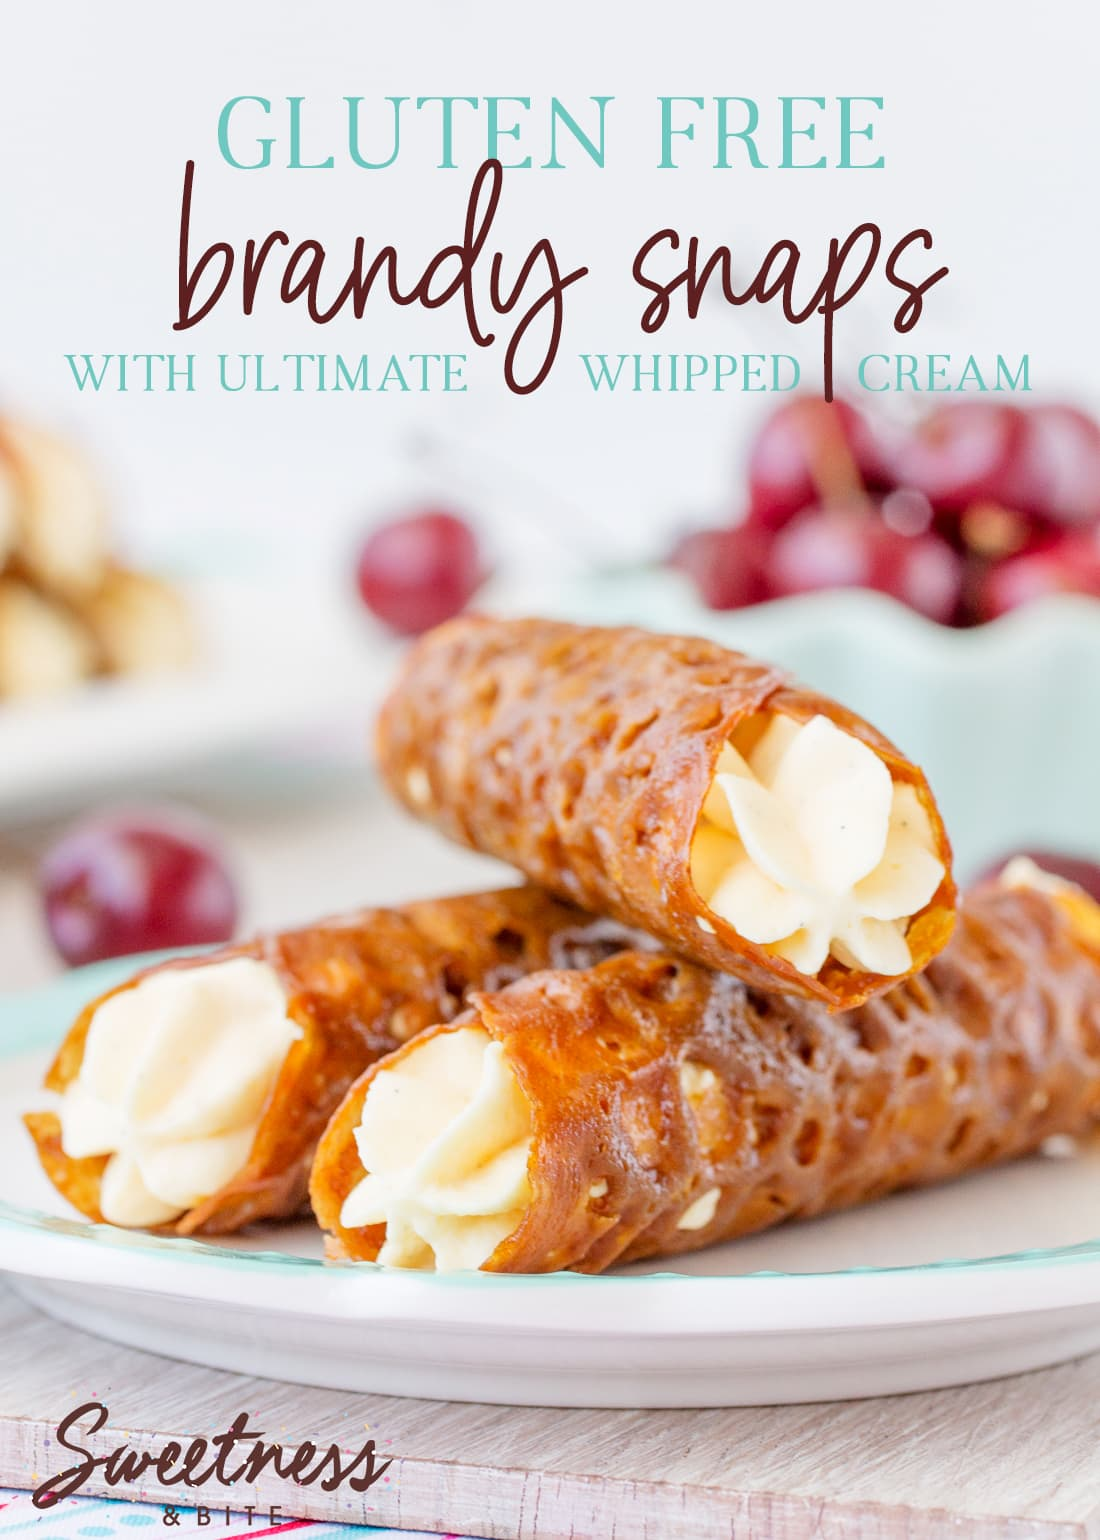 """Three brandy snaps stacked on a plate, text overly reads """"Gluten Free Brandy Snaps with Ultimate Whipped Cream."""""""